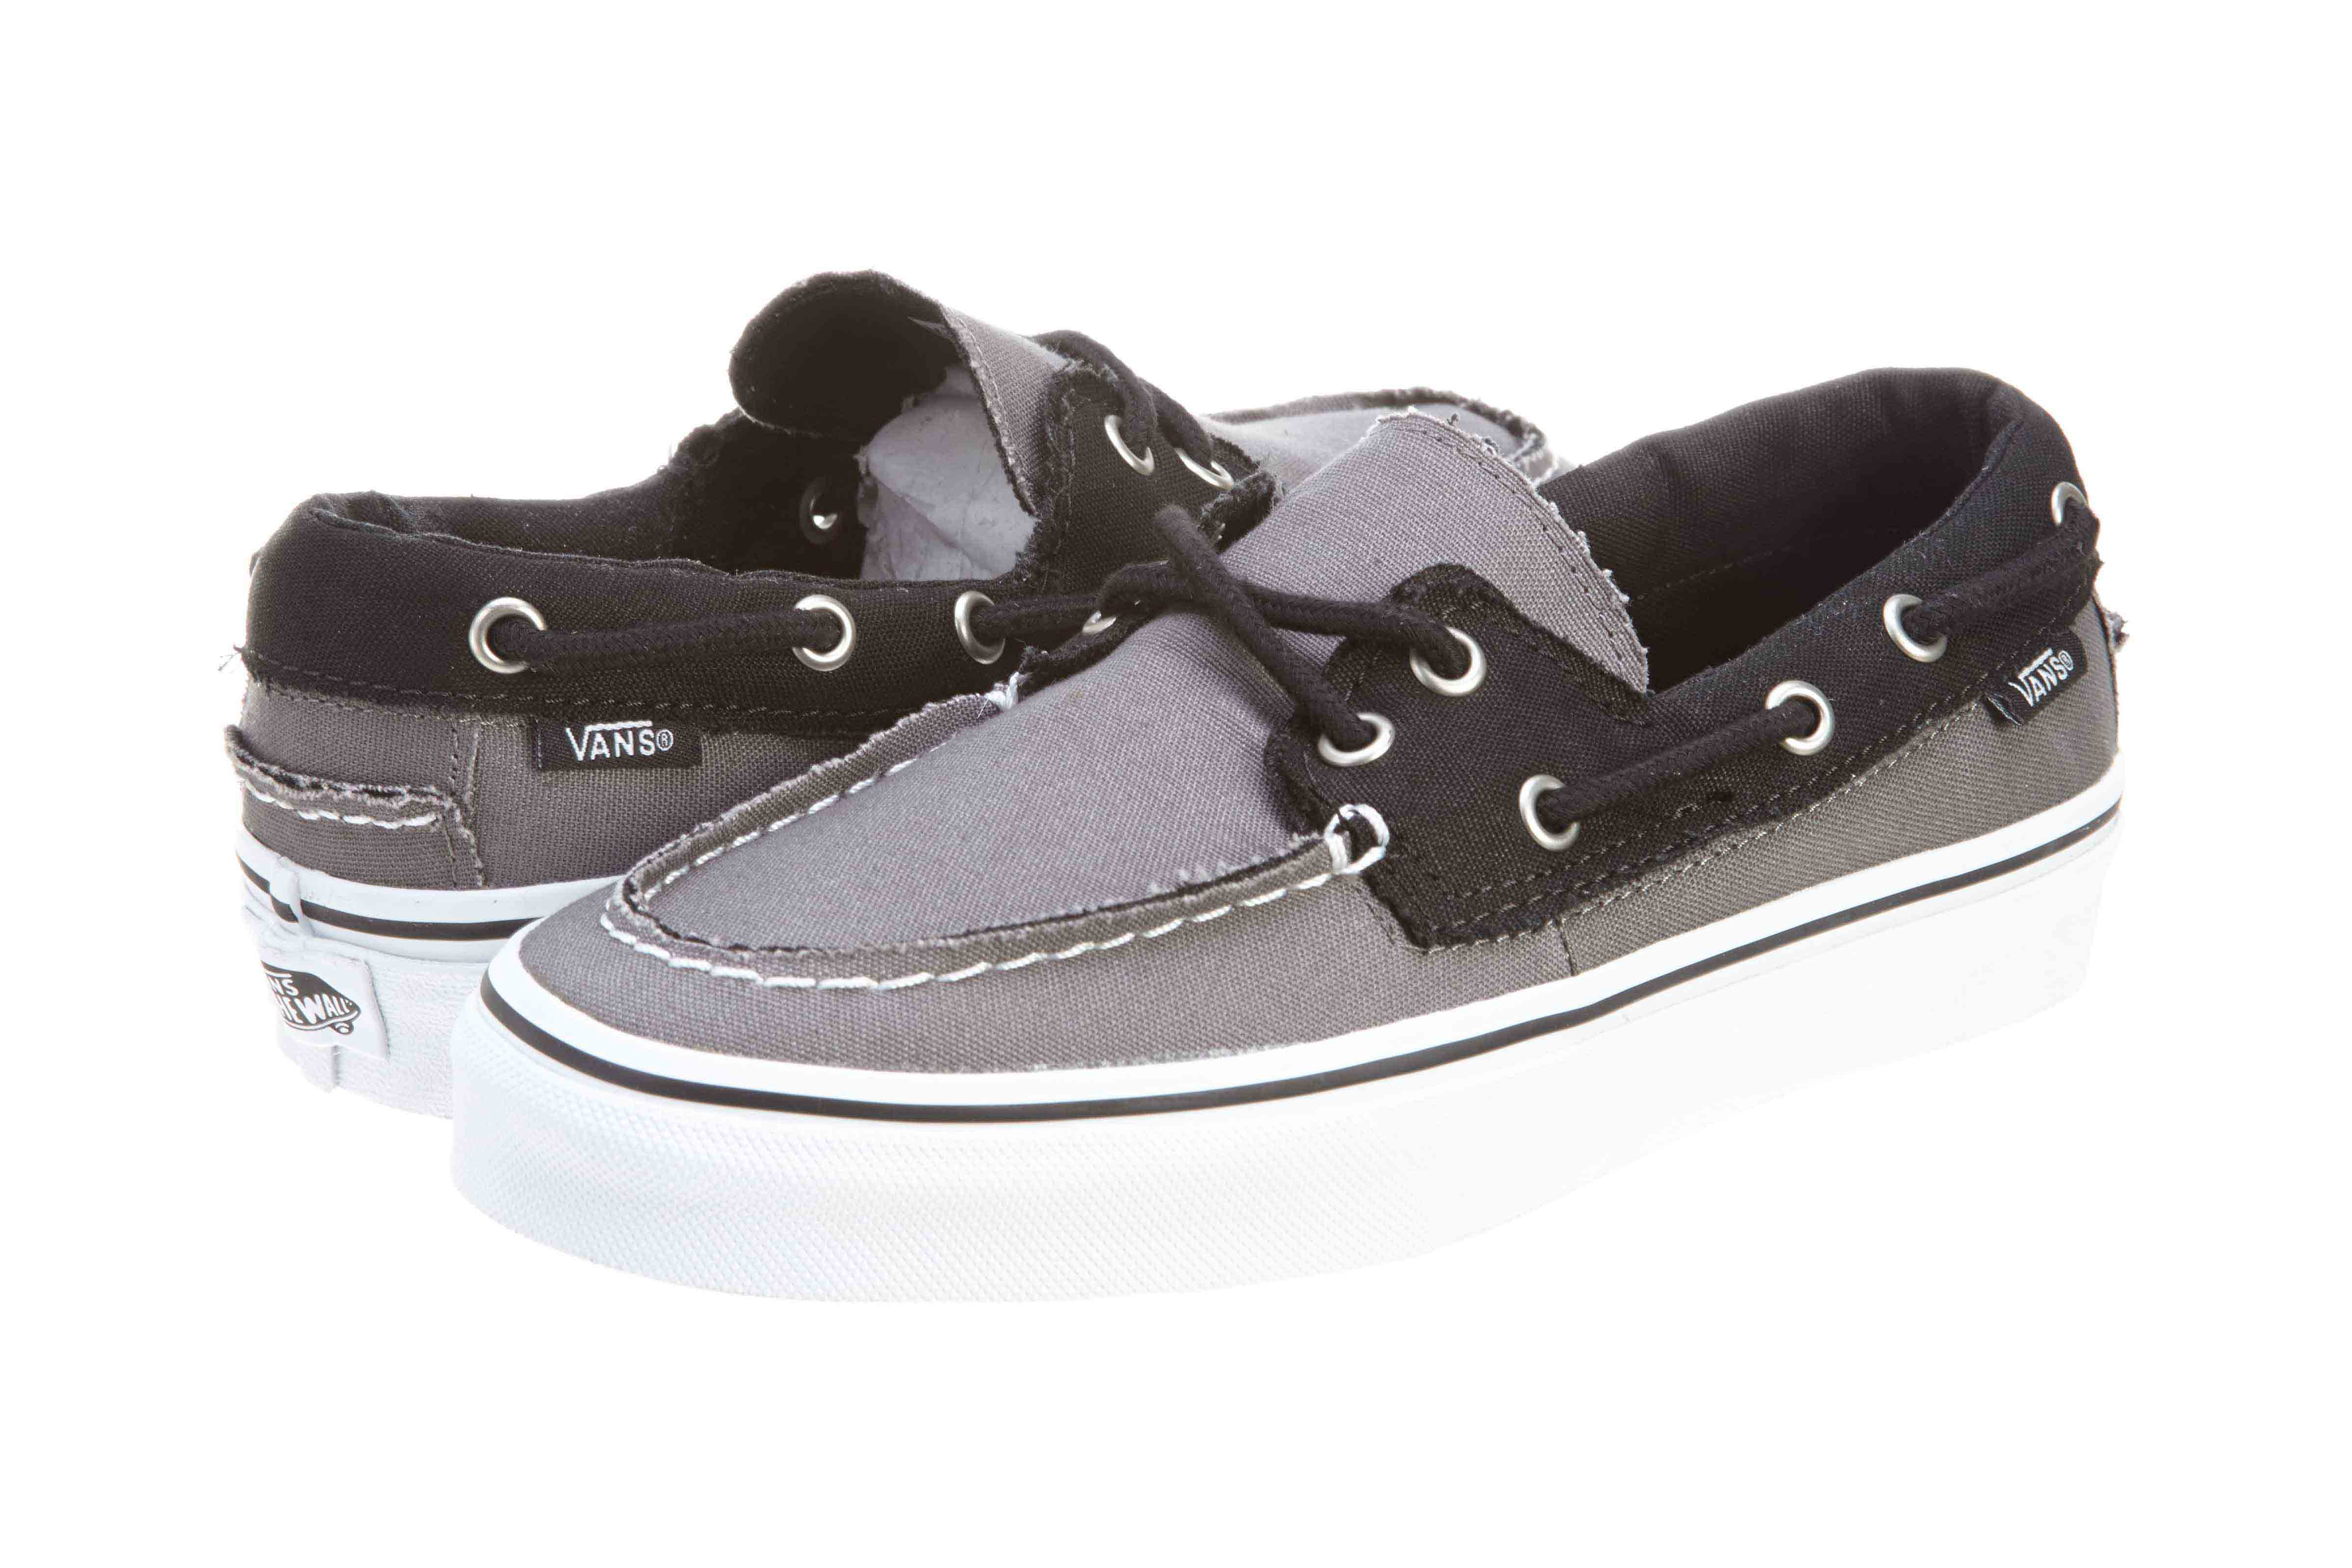 Vans Zapato Del Barco Unisex Style # Vn-0Qhk by